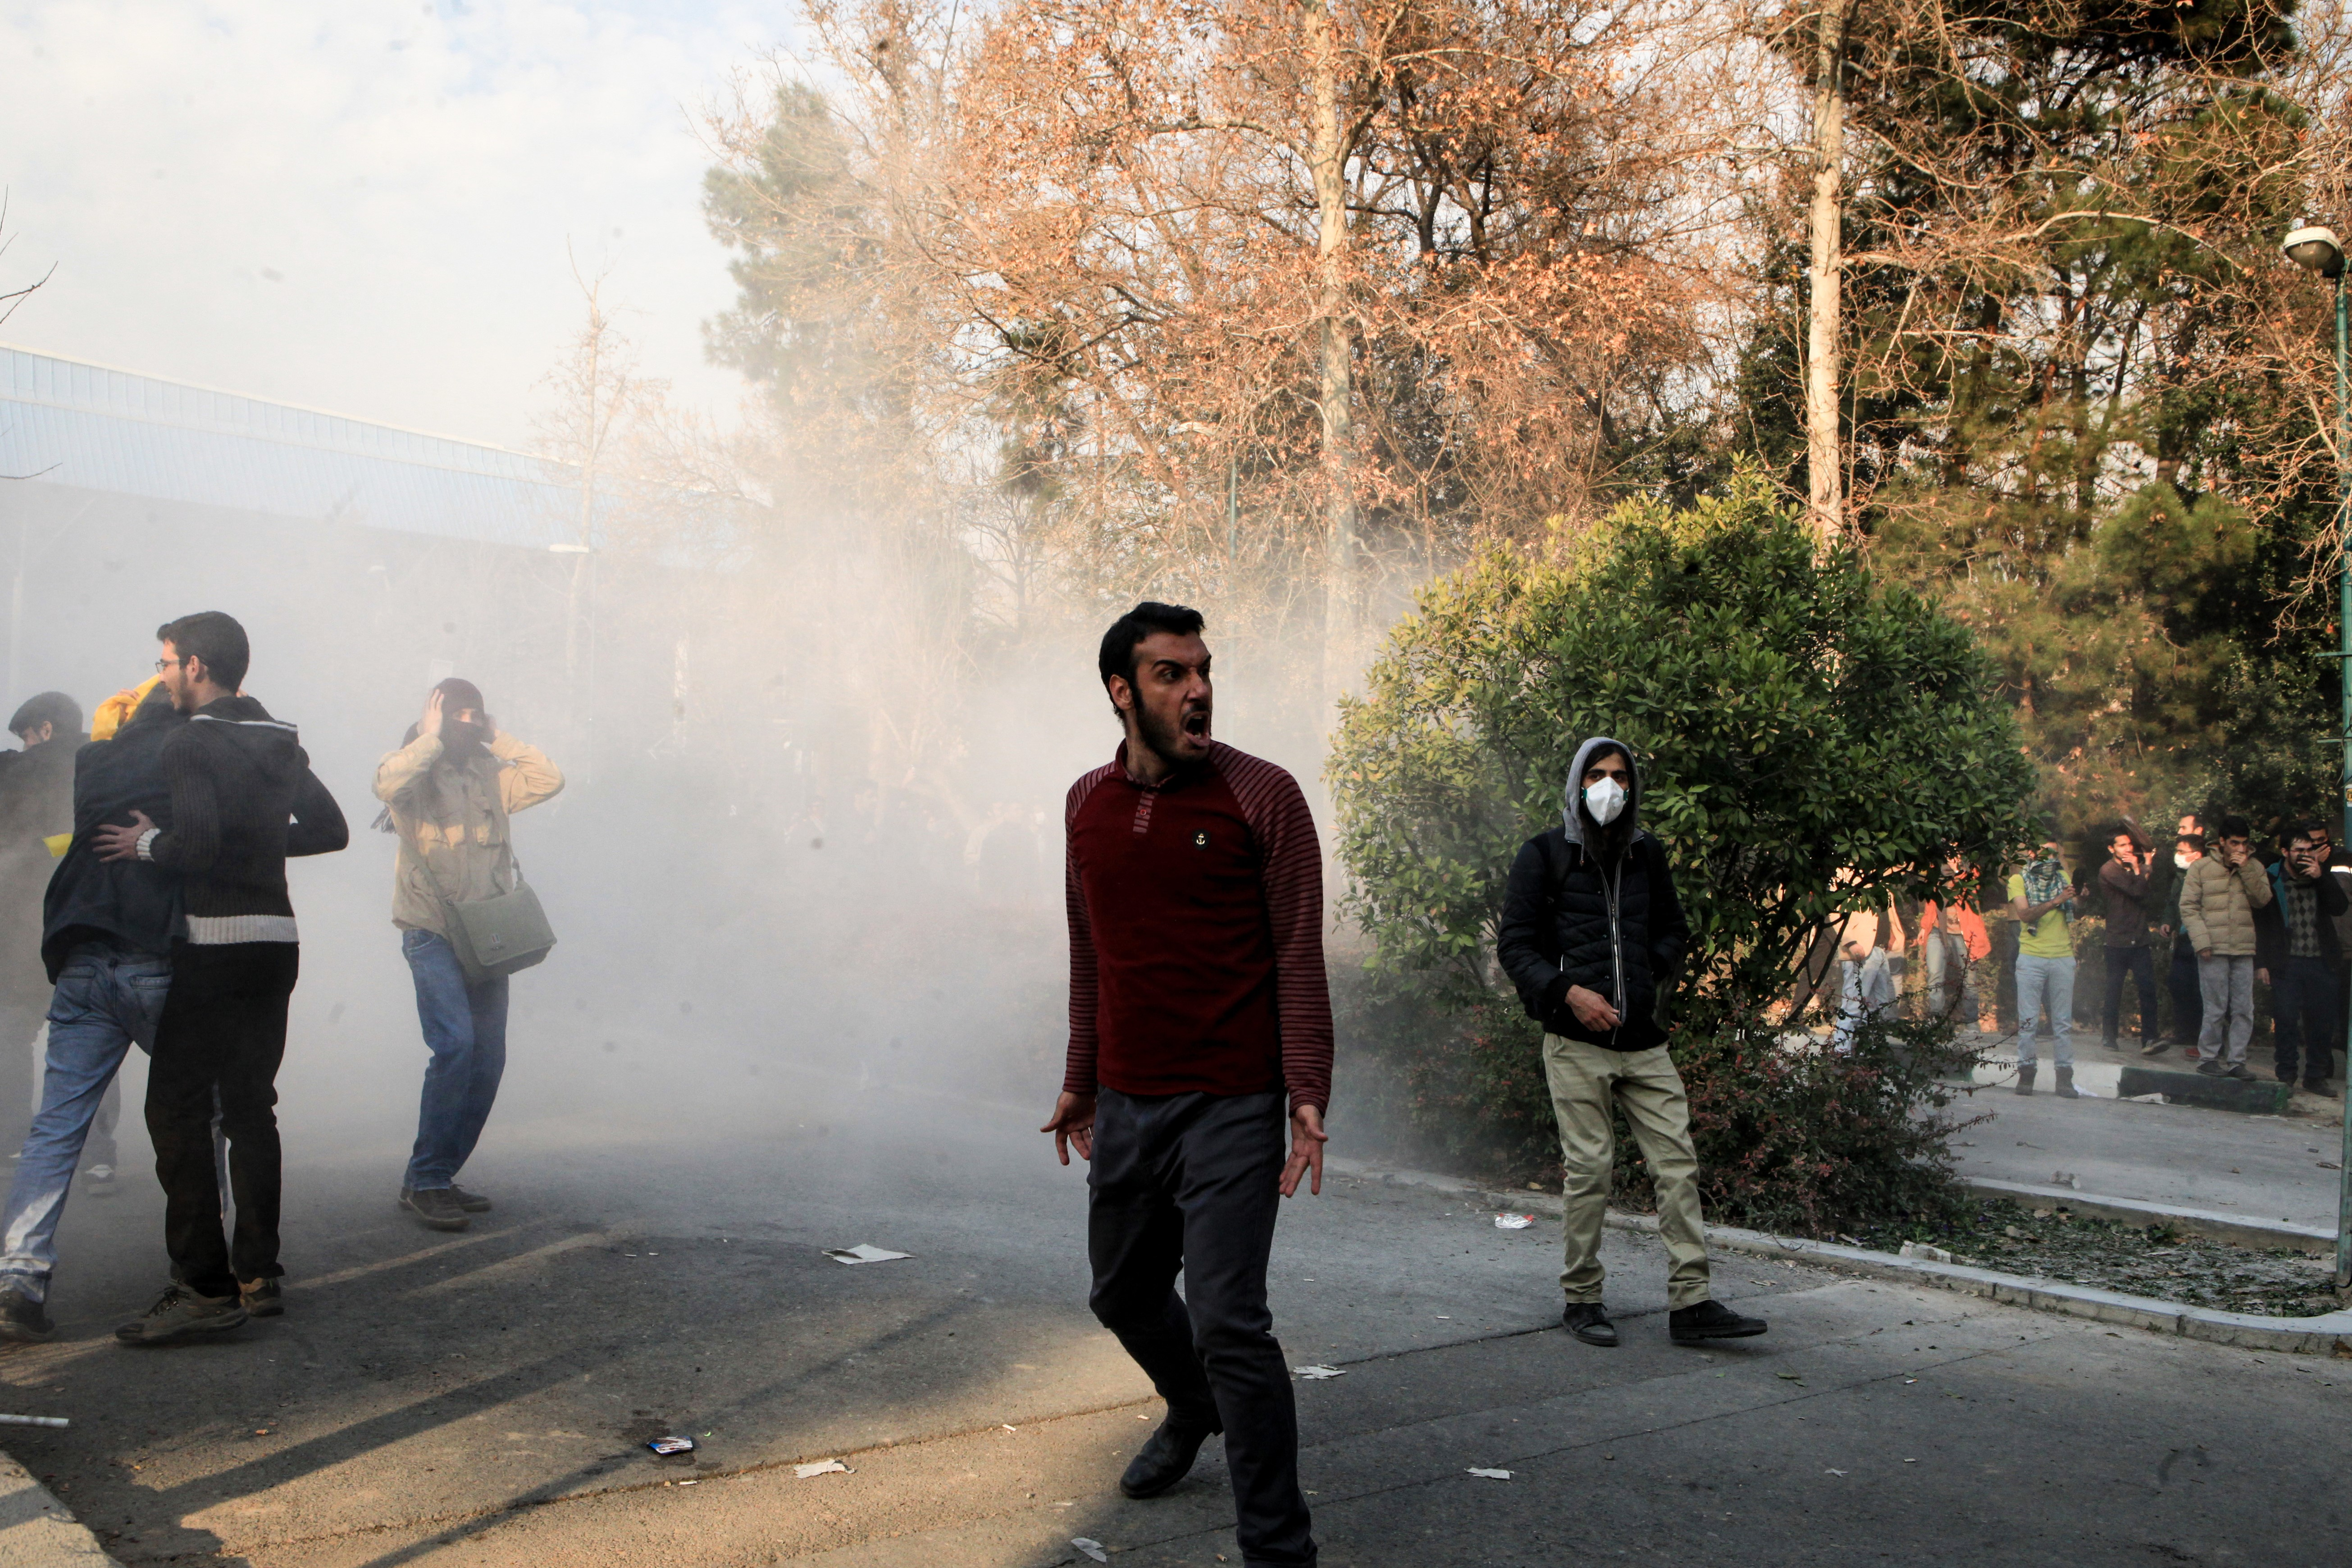 People gather to protest over the high cost of living in Tehran, Iran, on Dec. 30, 2017.